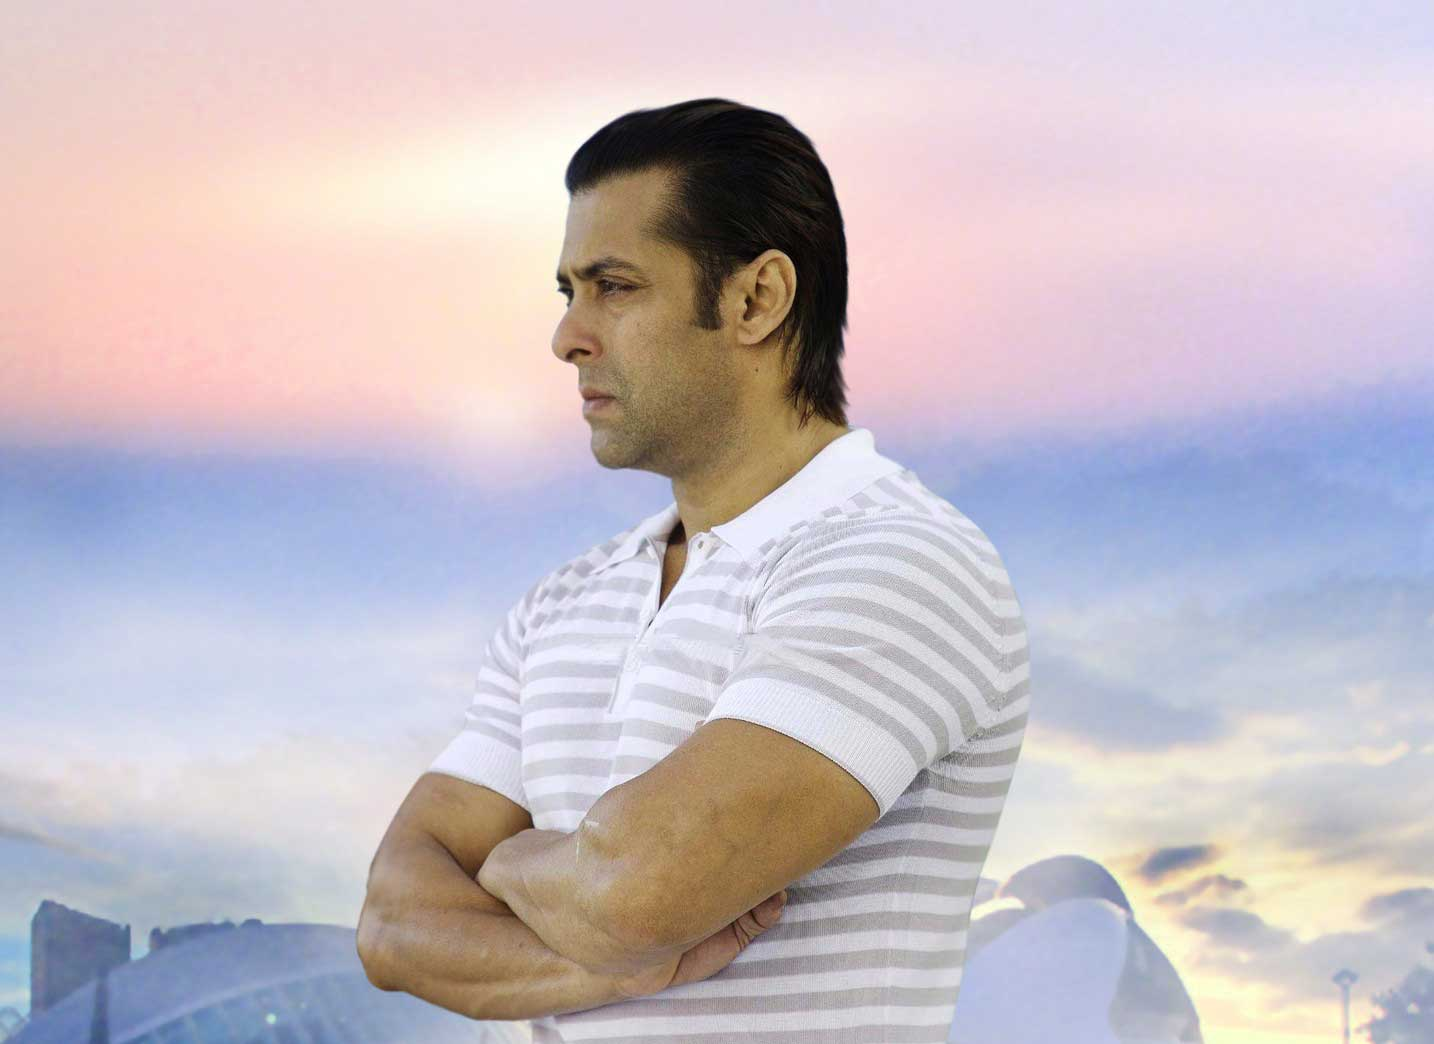 Salman Khan Images HD Free 66